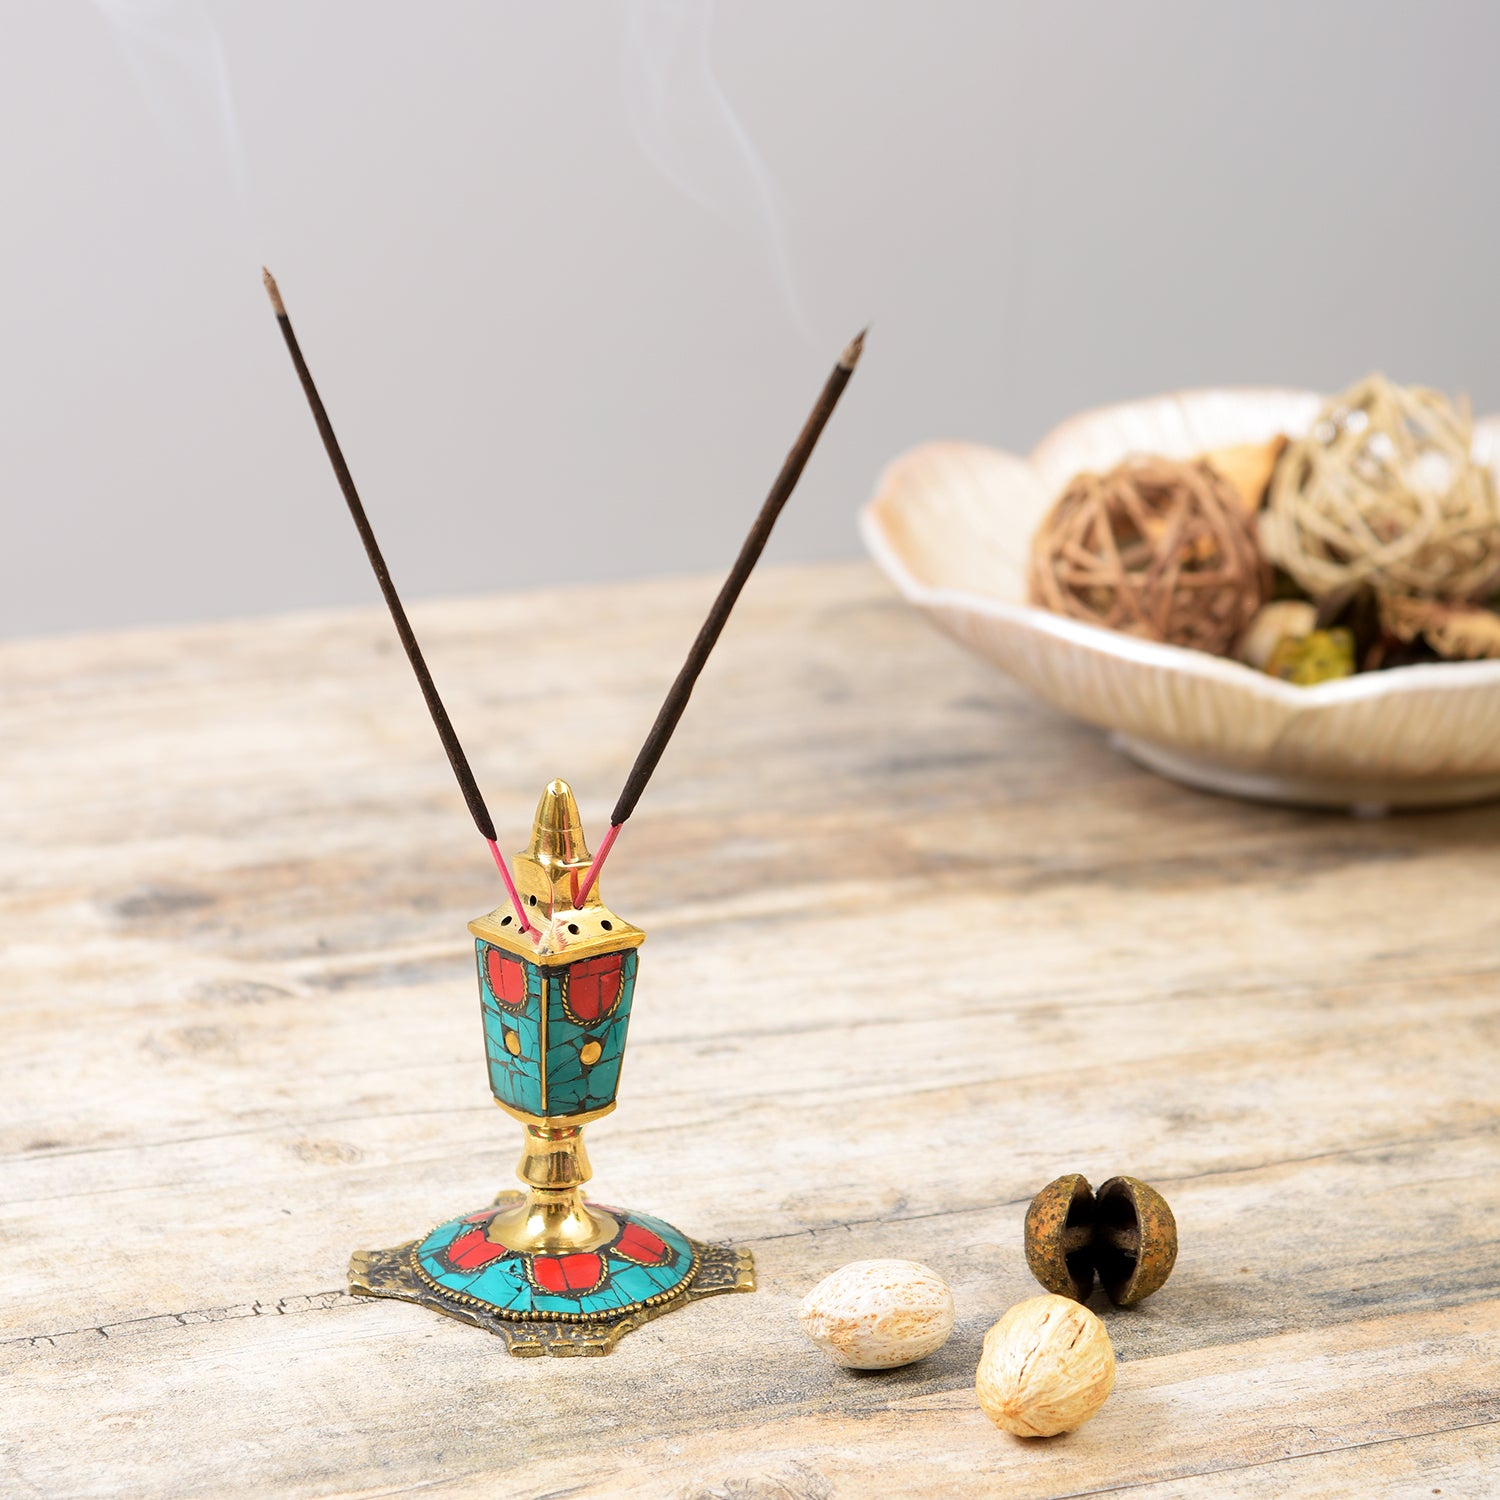 Handcrafted Stone Incense Holder - Turquoise and Red